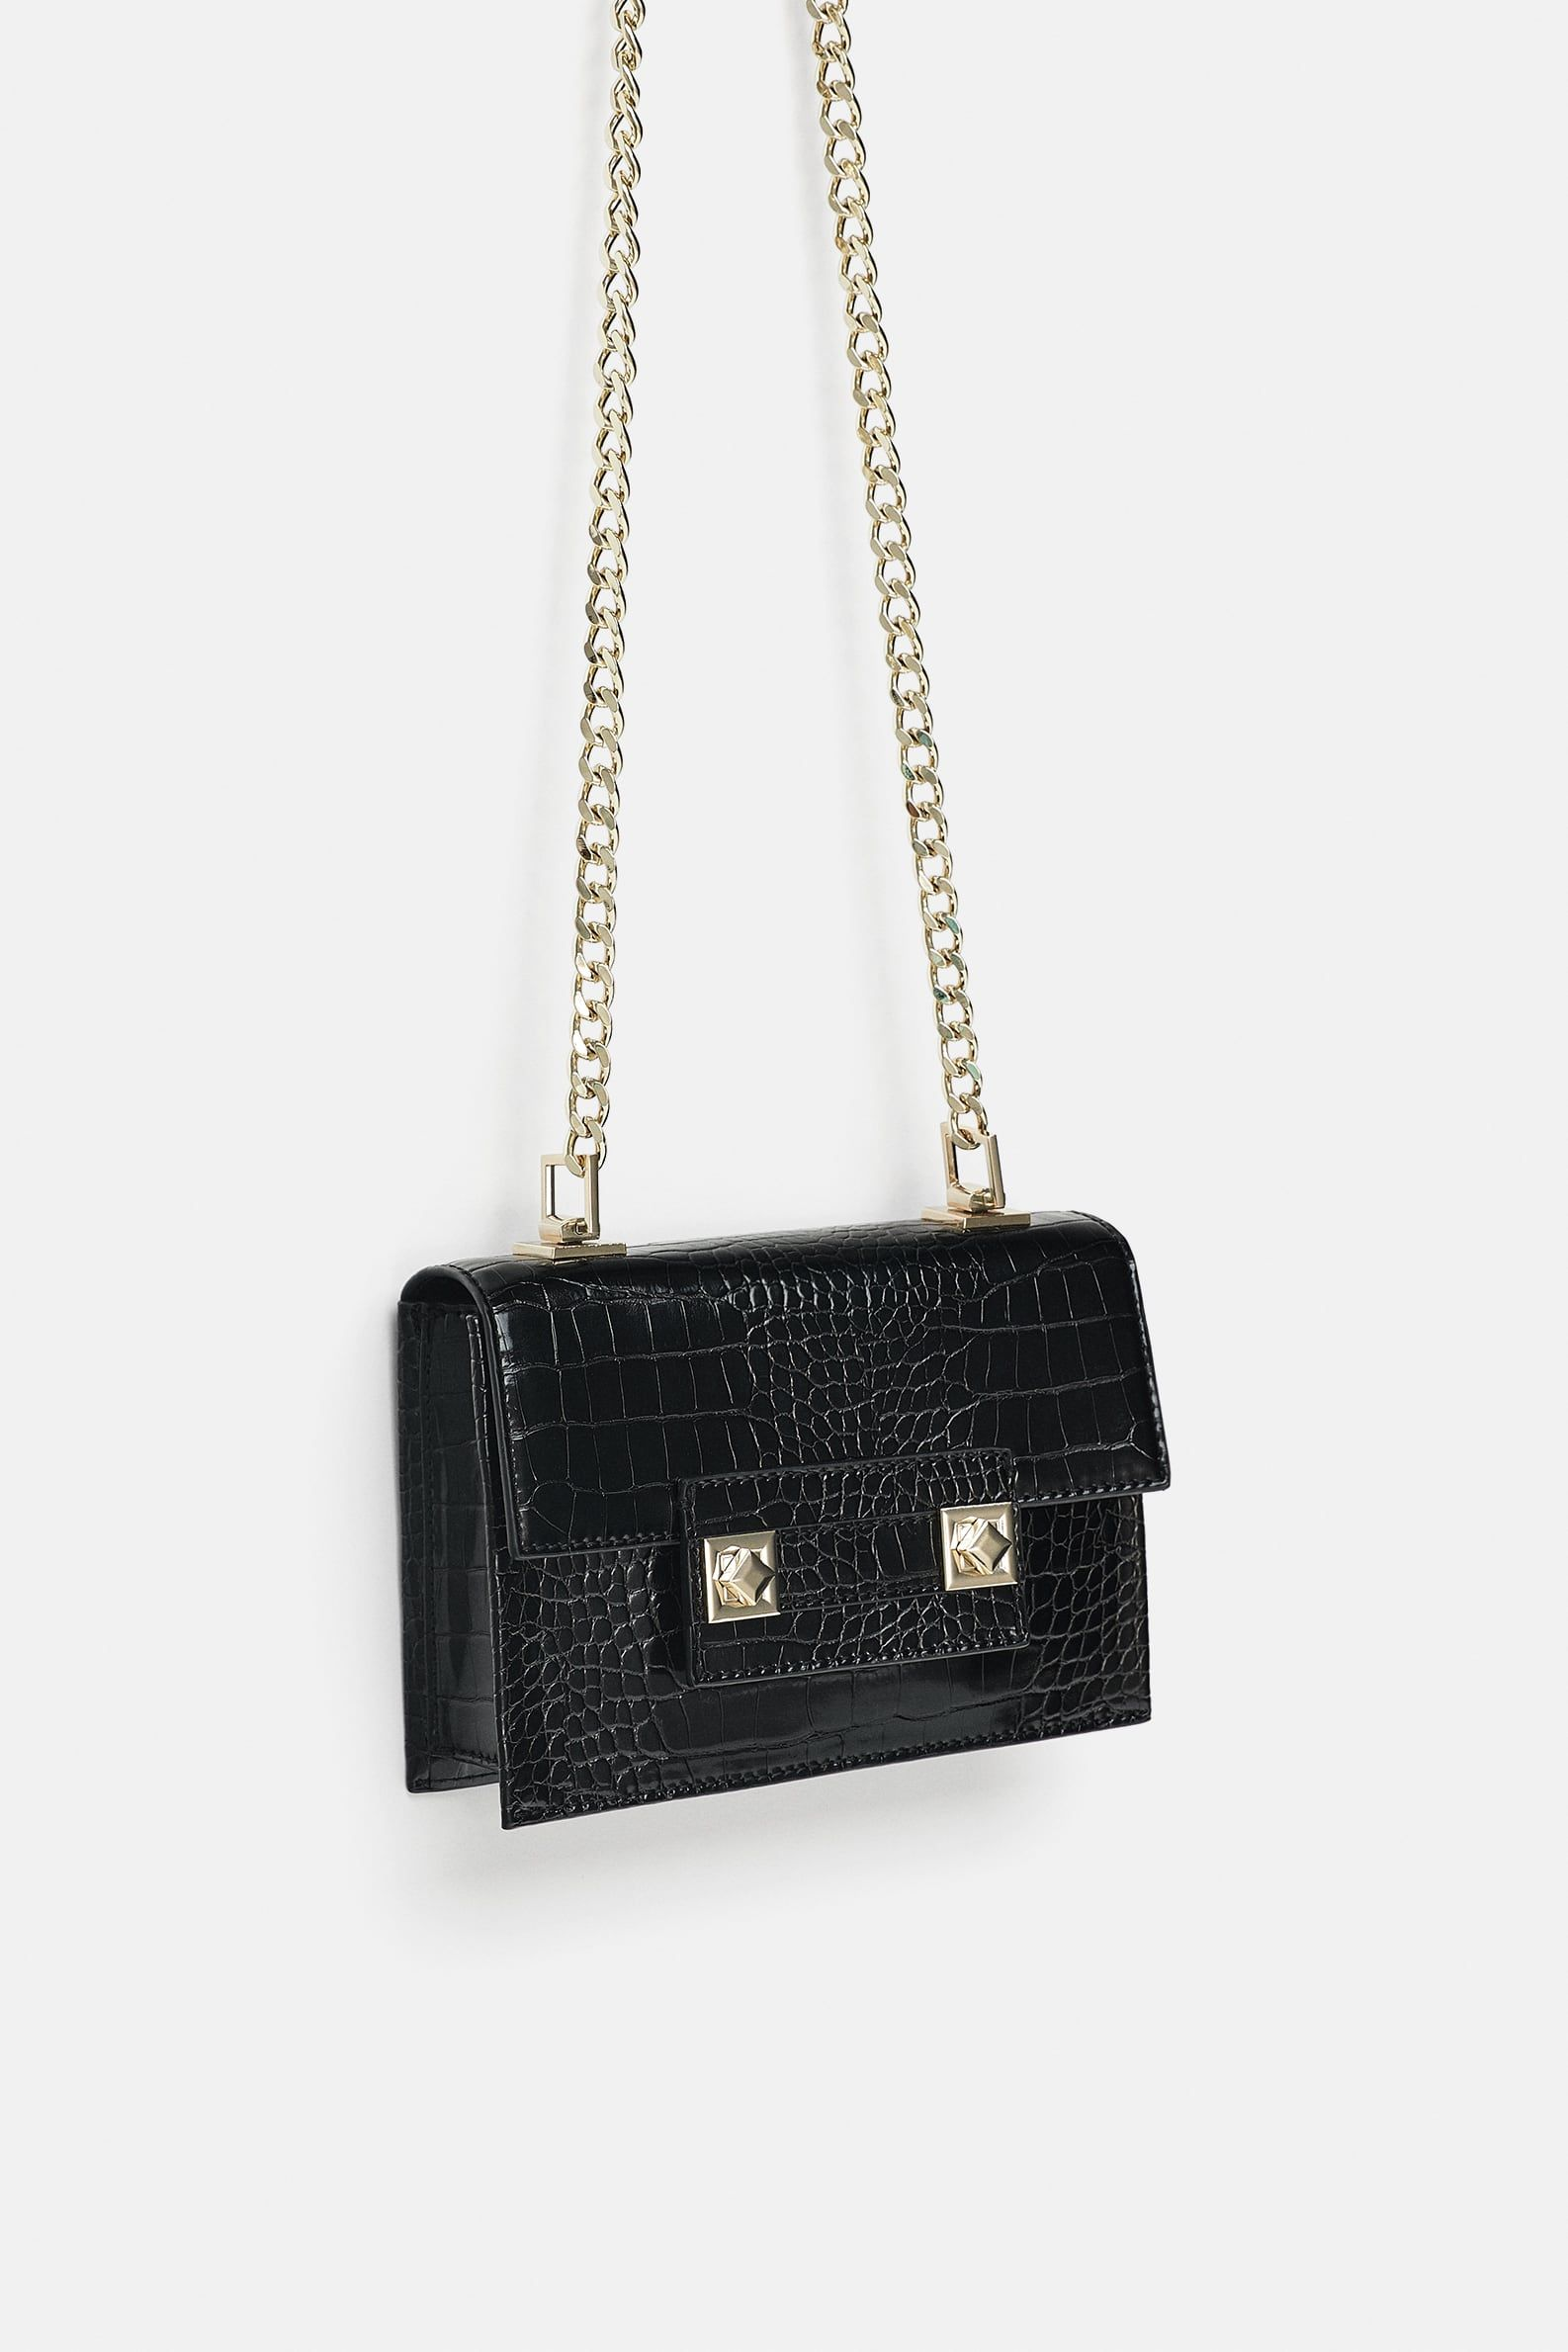 b3843b4a8a Image 1 of MINI CROSSBODY BAG WITH CLASP CLOSURE from Zara